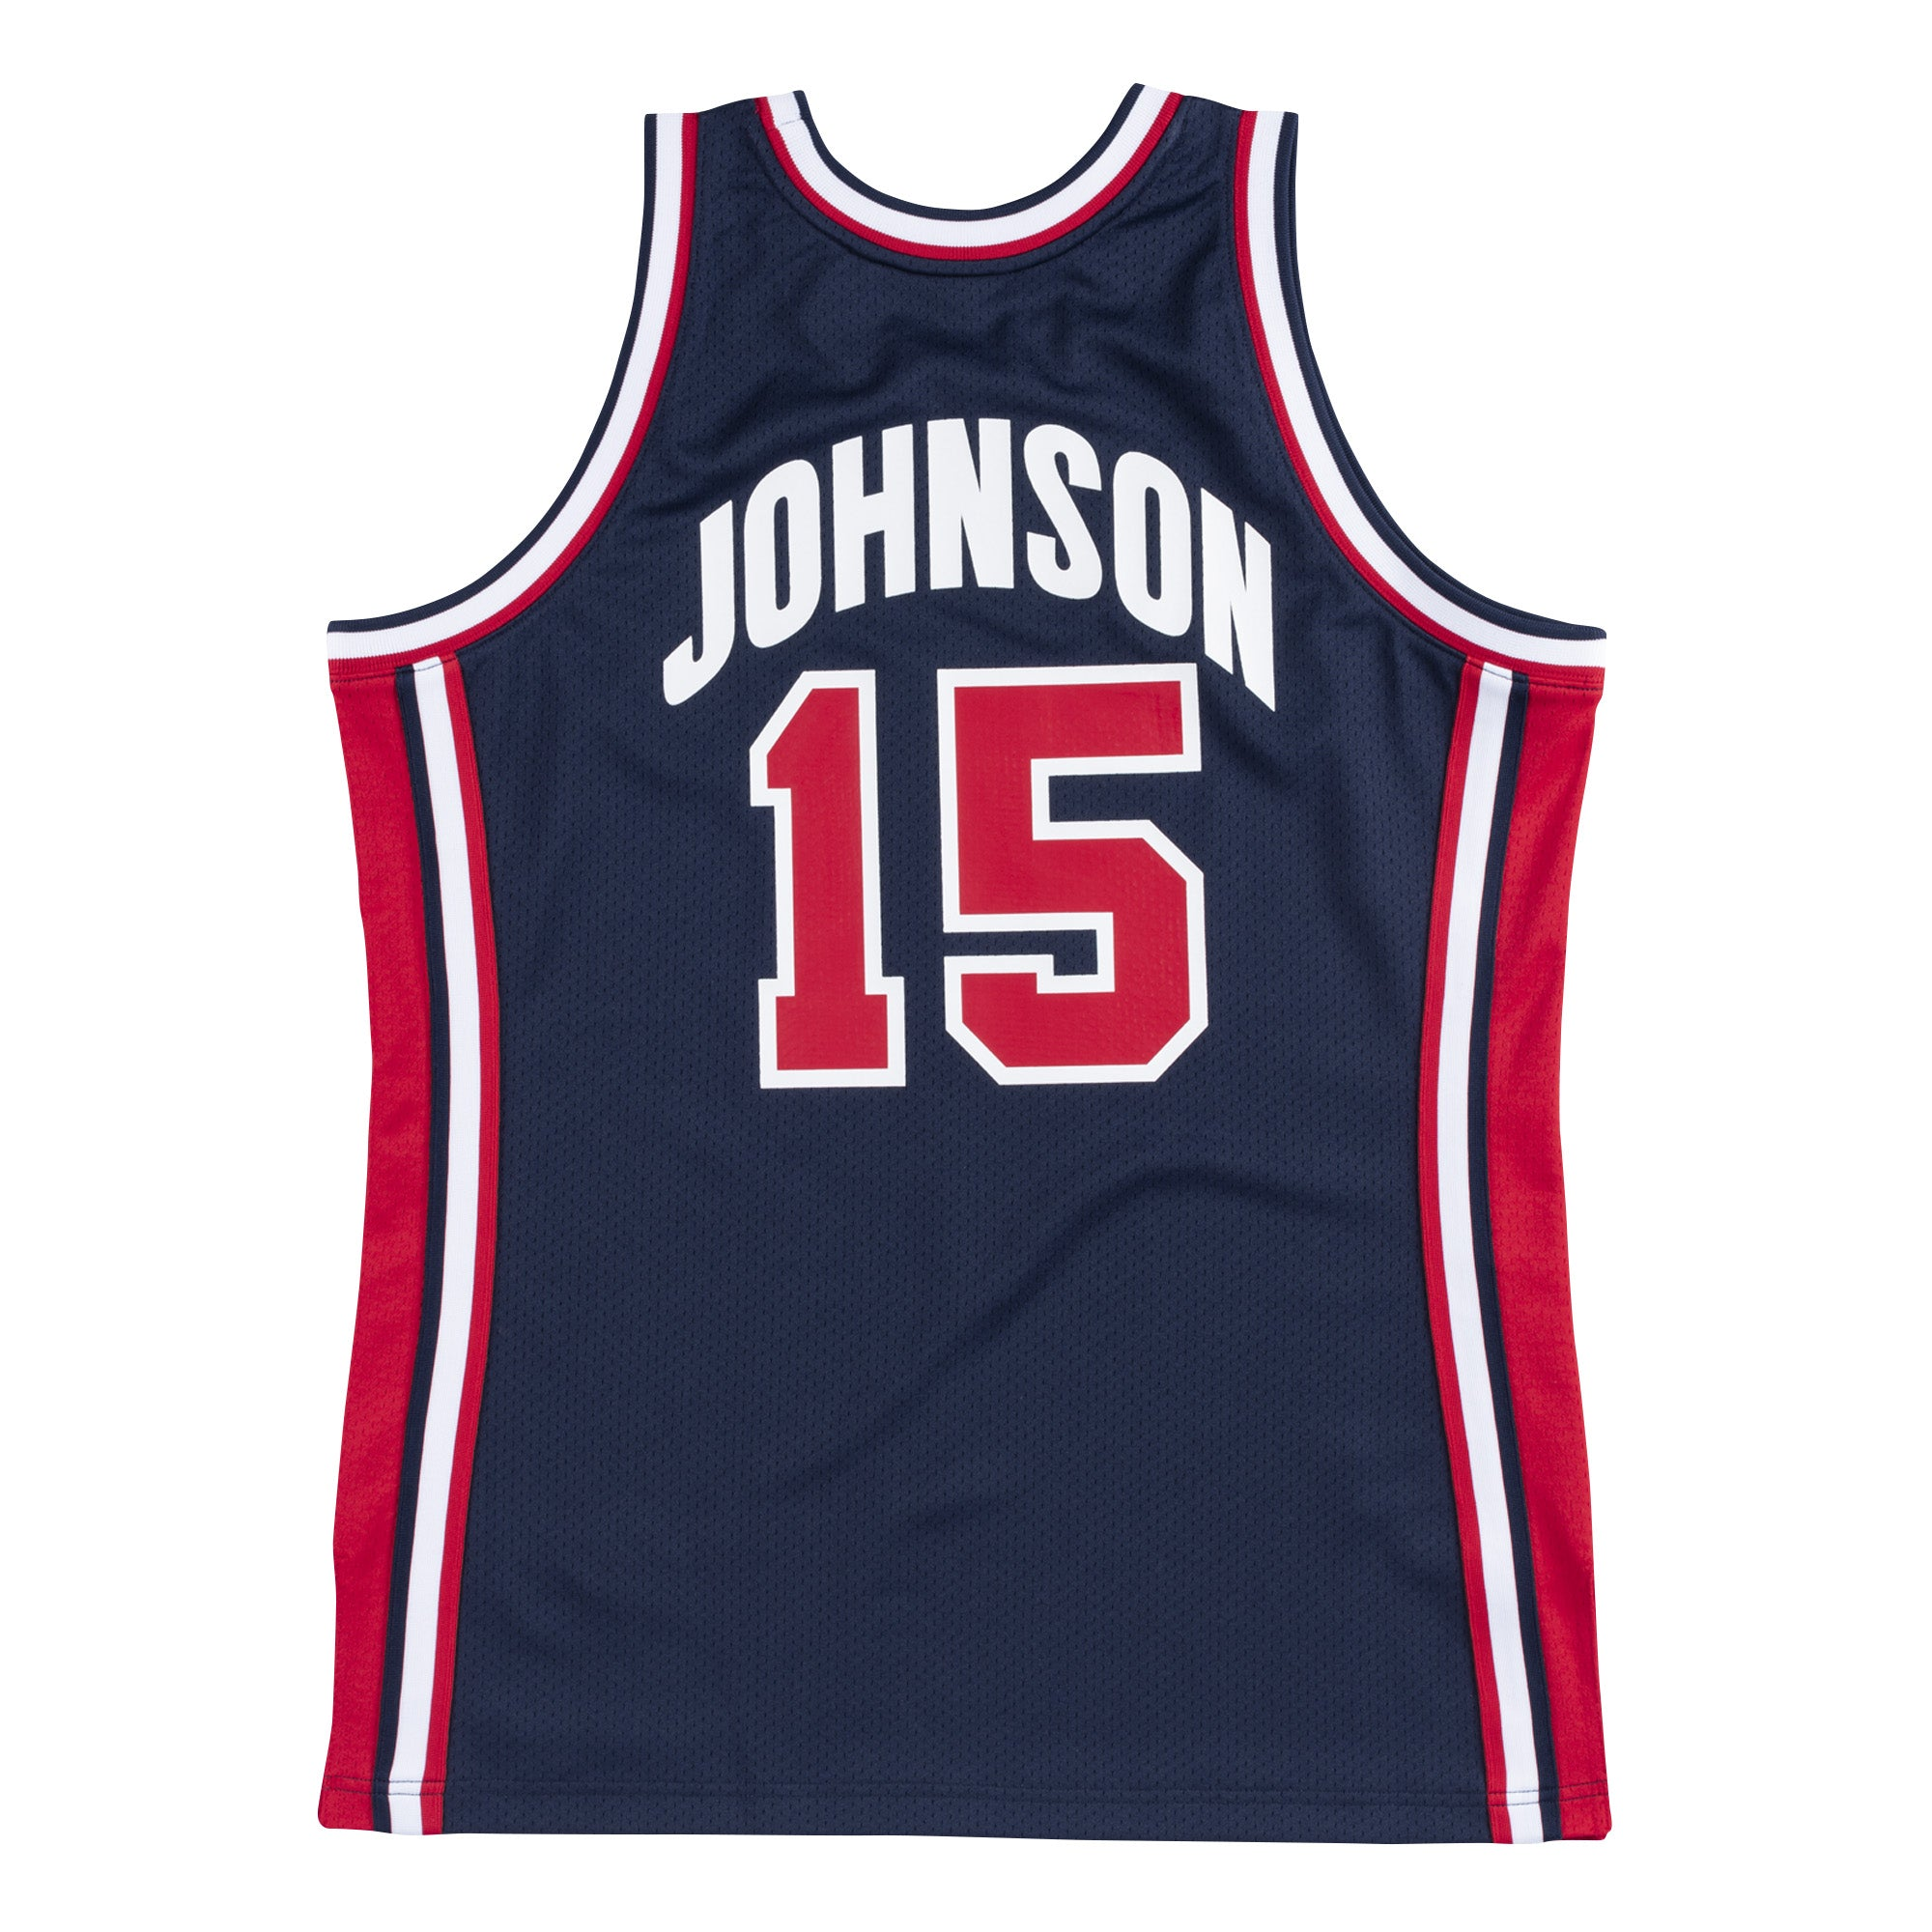 Mitchell & Ness USA '92 Basketball Magic Johnson Authentic Jersey